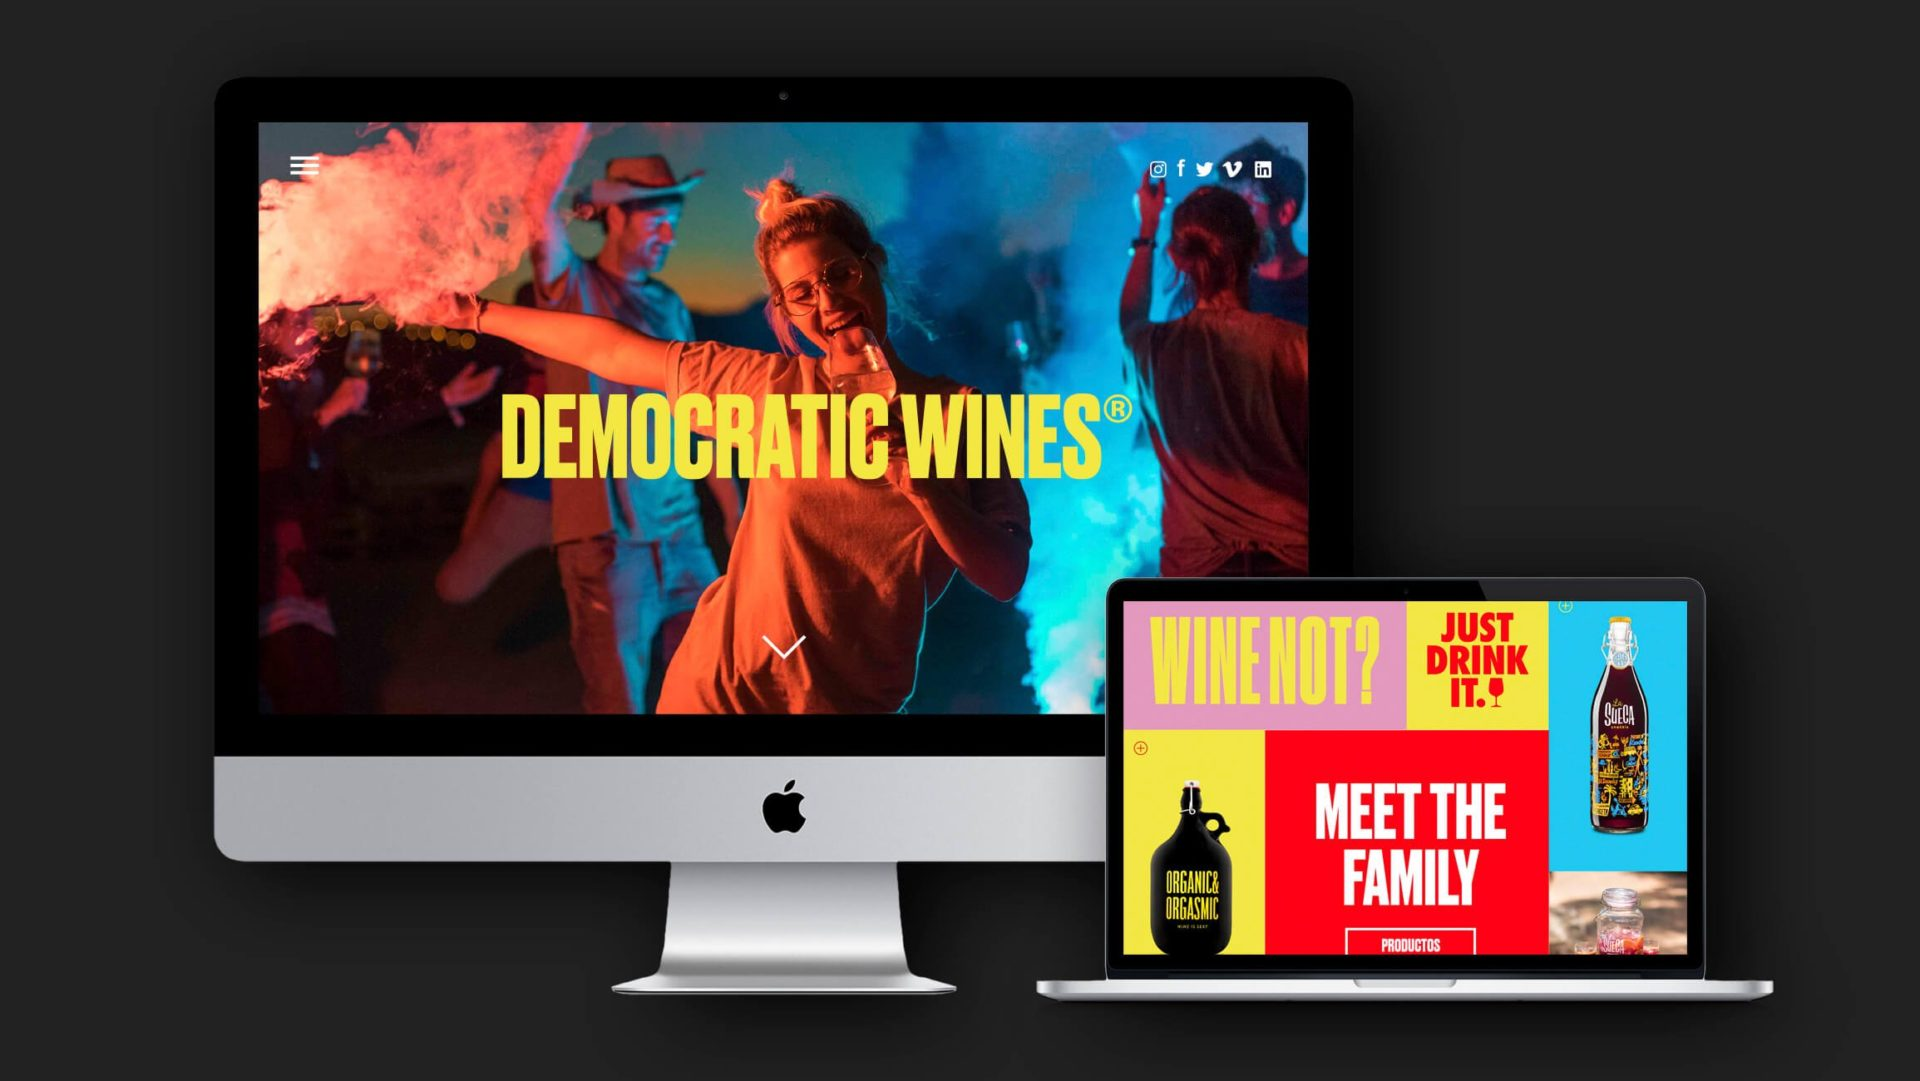 diseño-web-vino-democratic-wines-diversion-a-porron